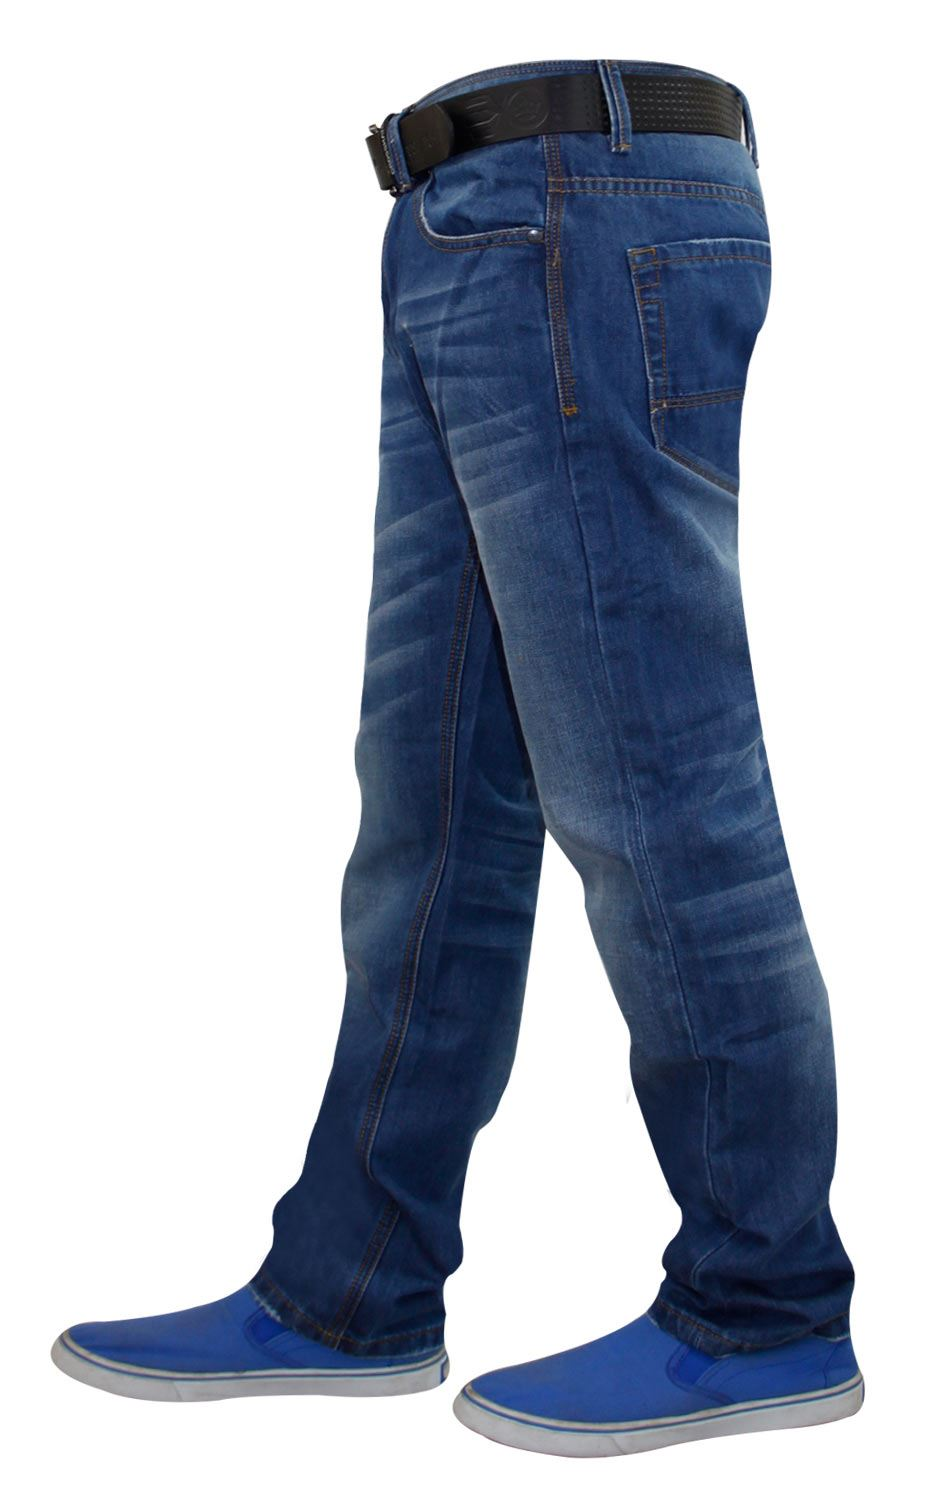 Mens-Straight-Leg-Jeans-Regular-Fit-Denim-Pants-Trousers-With-Free-Leather-Belt thumbnail 7